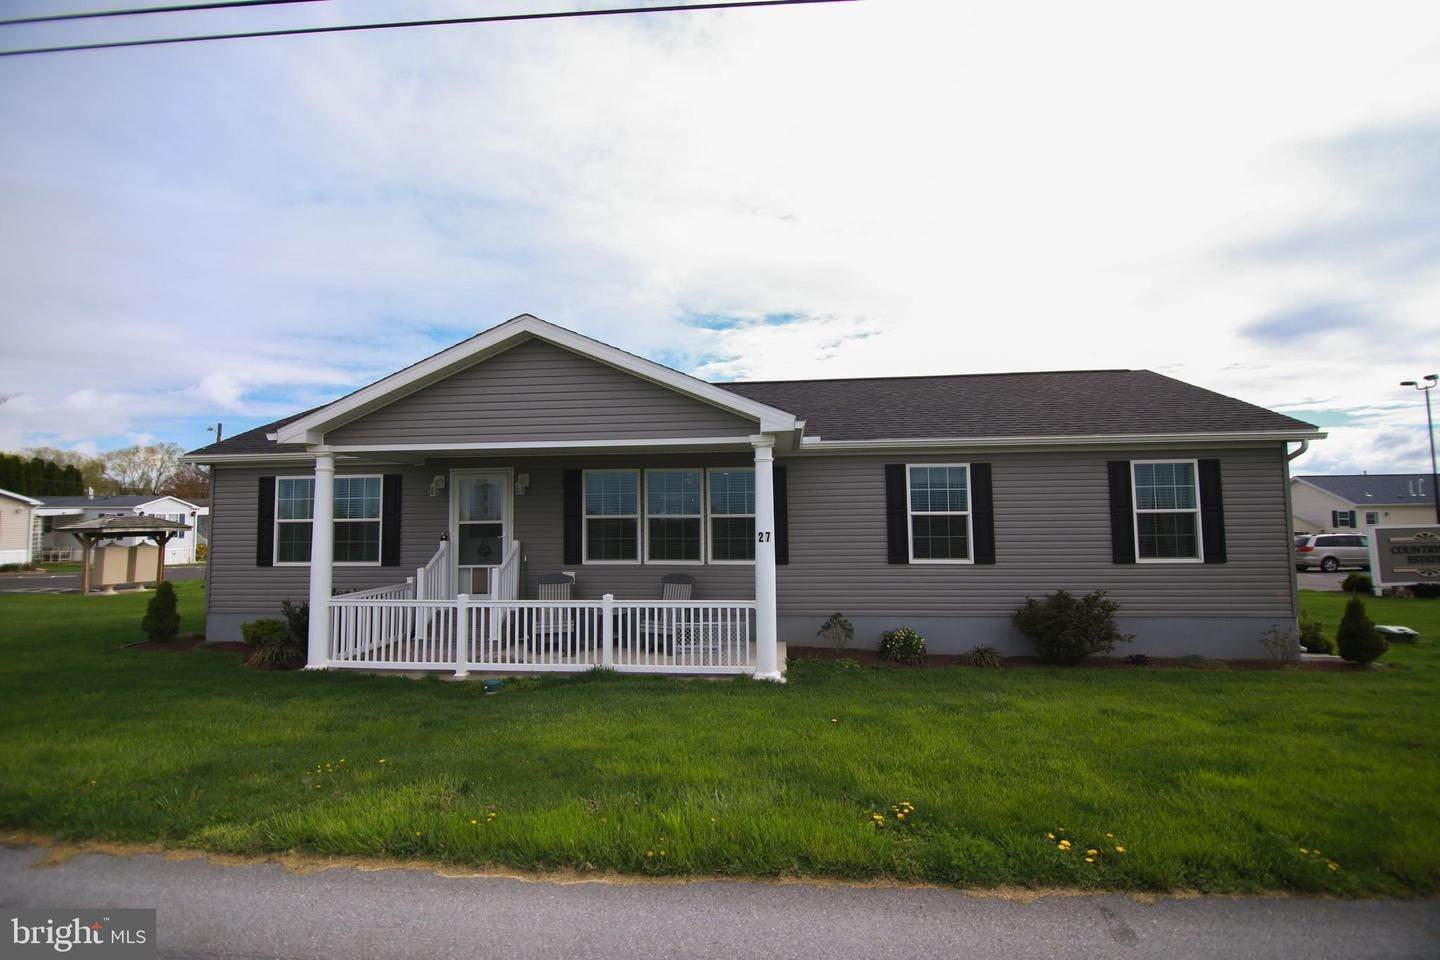 Residential for Sale at 27 COUNTRYSIDE Drive Gordonville, Pennsylvania 17529 United States